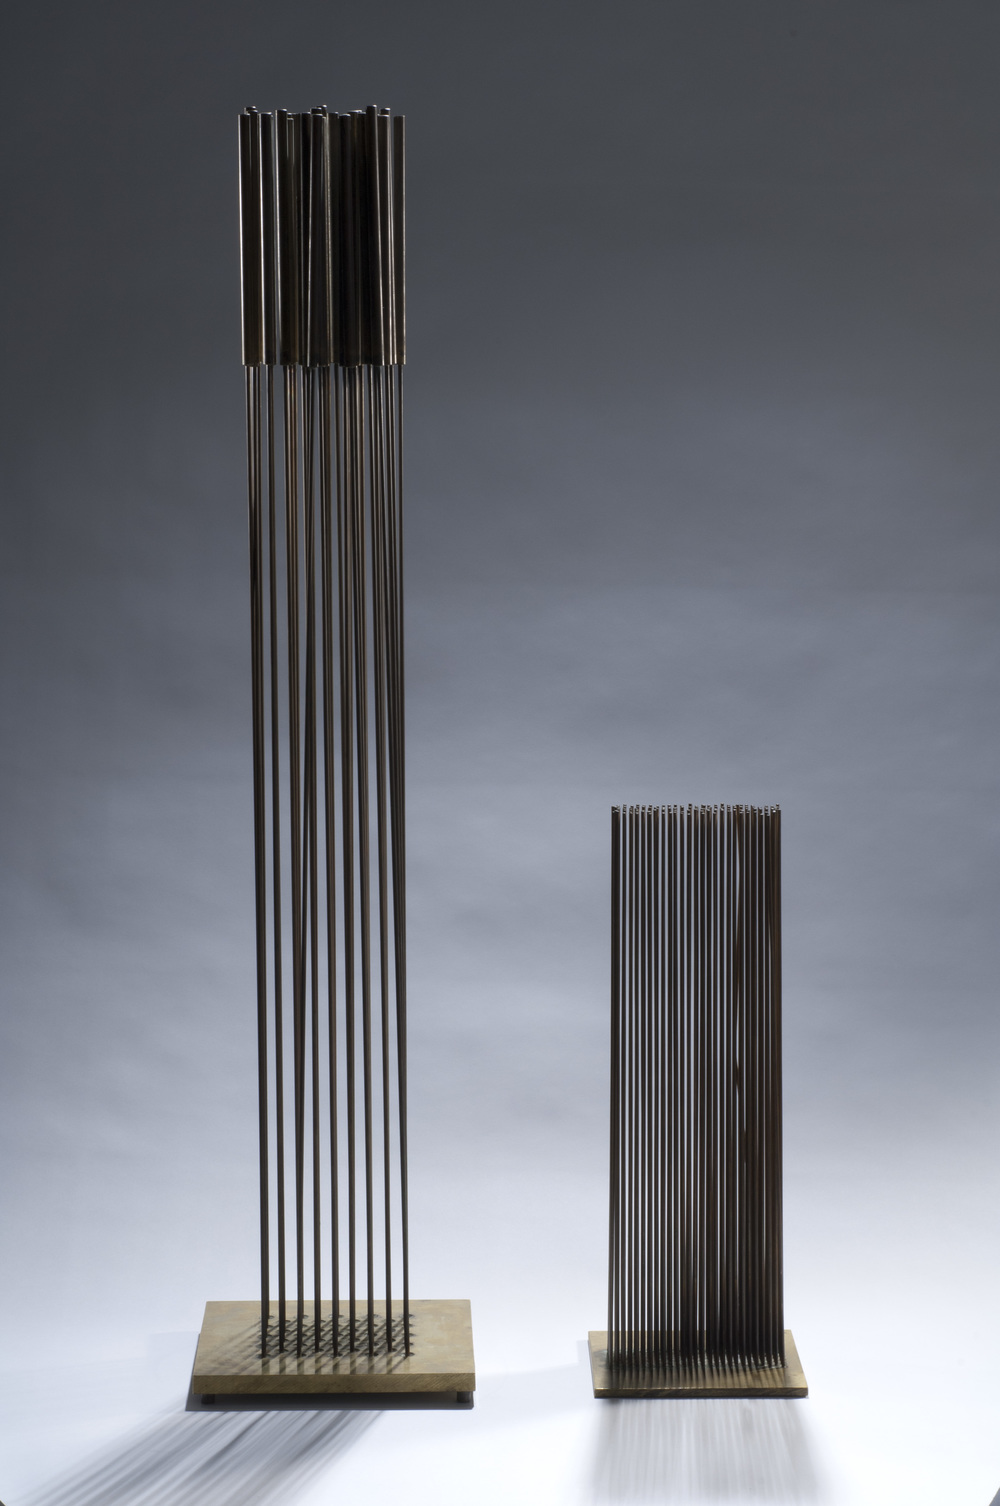 LEFT:  SOLD    Sonambient, c. 1960s  , copper on bronze, 36 3/4 x 7 3/4 x 7 3/4 inches  RIGHT:   Sonambient (Eleven Rows)  , Beryllium copper and brass, 16 x 2 x 5 inches